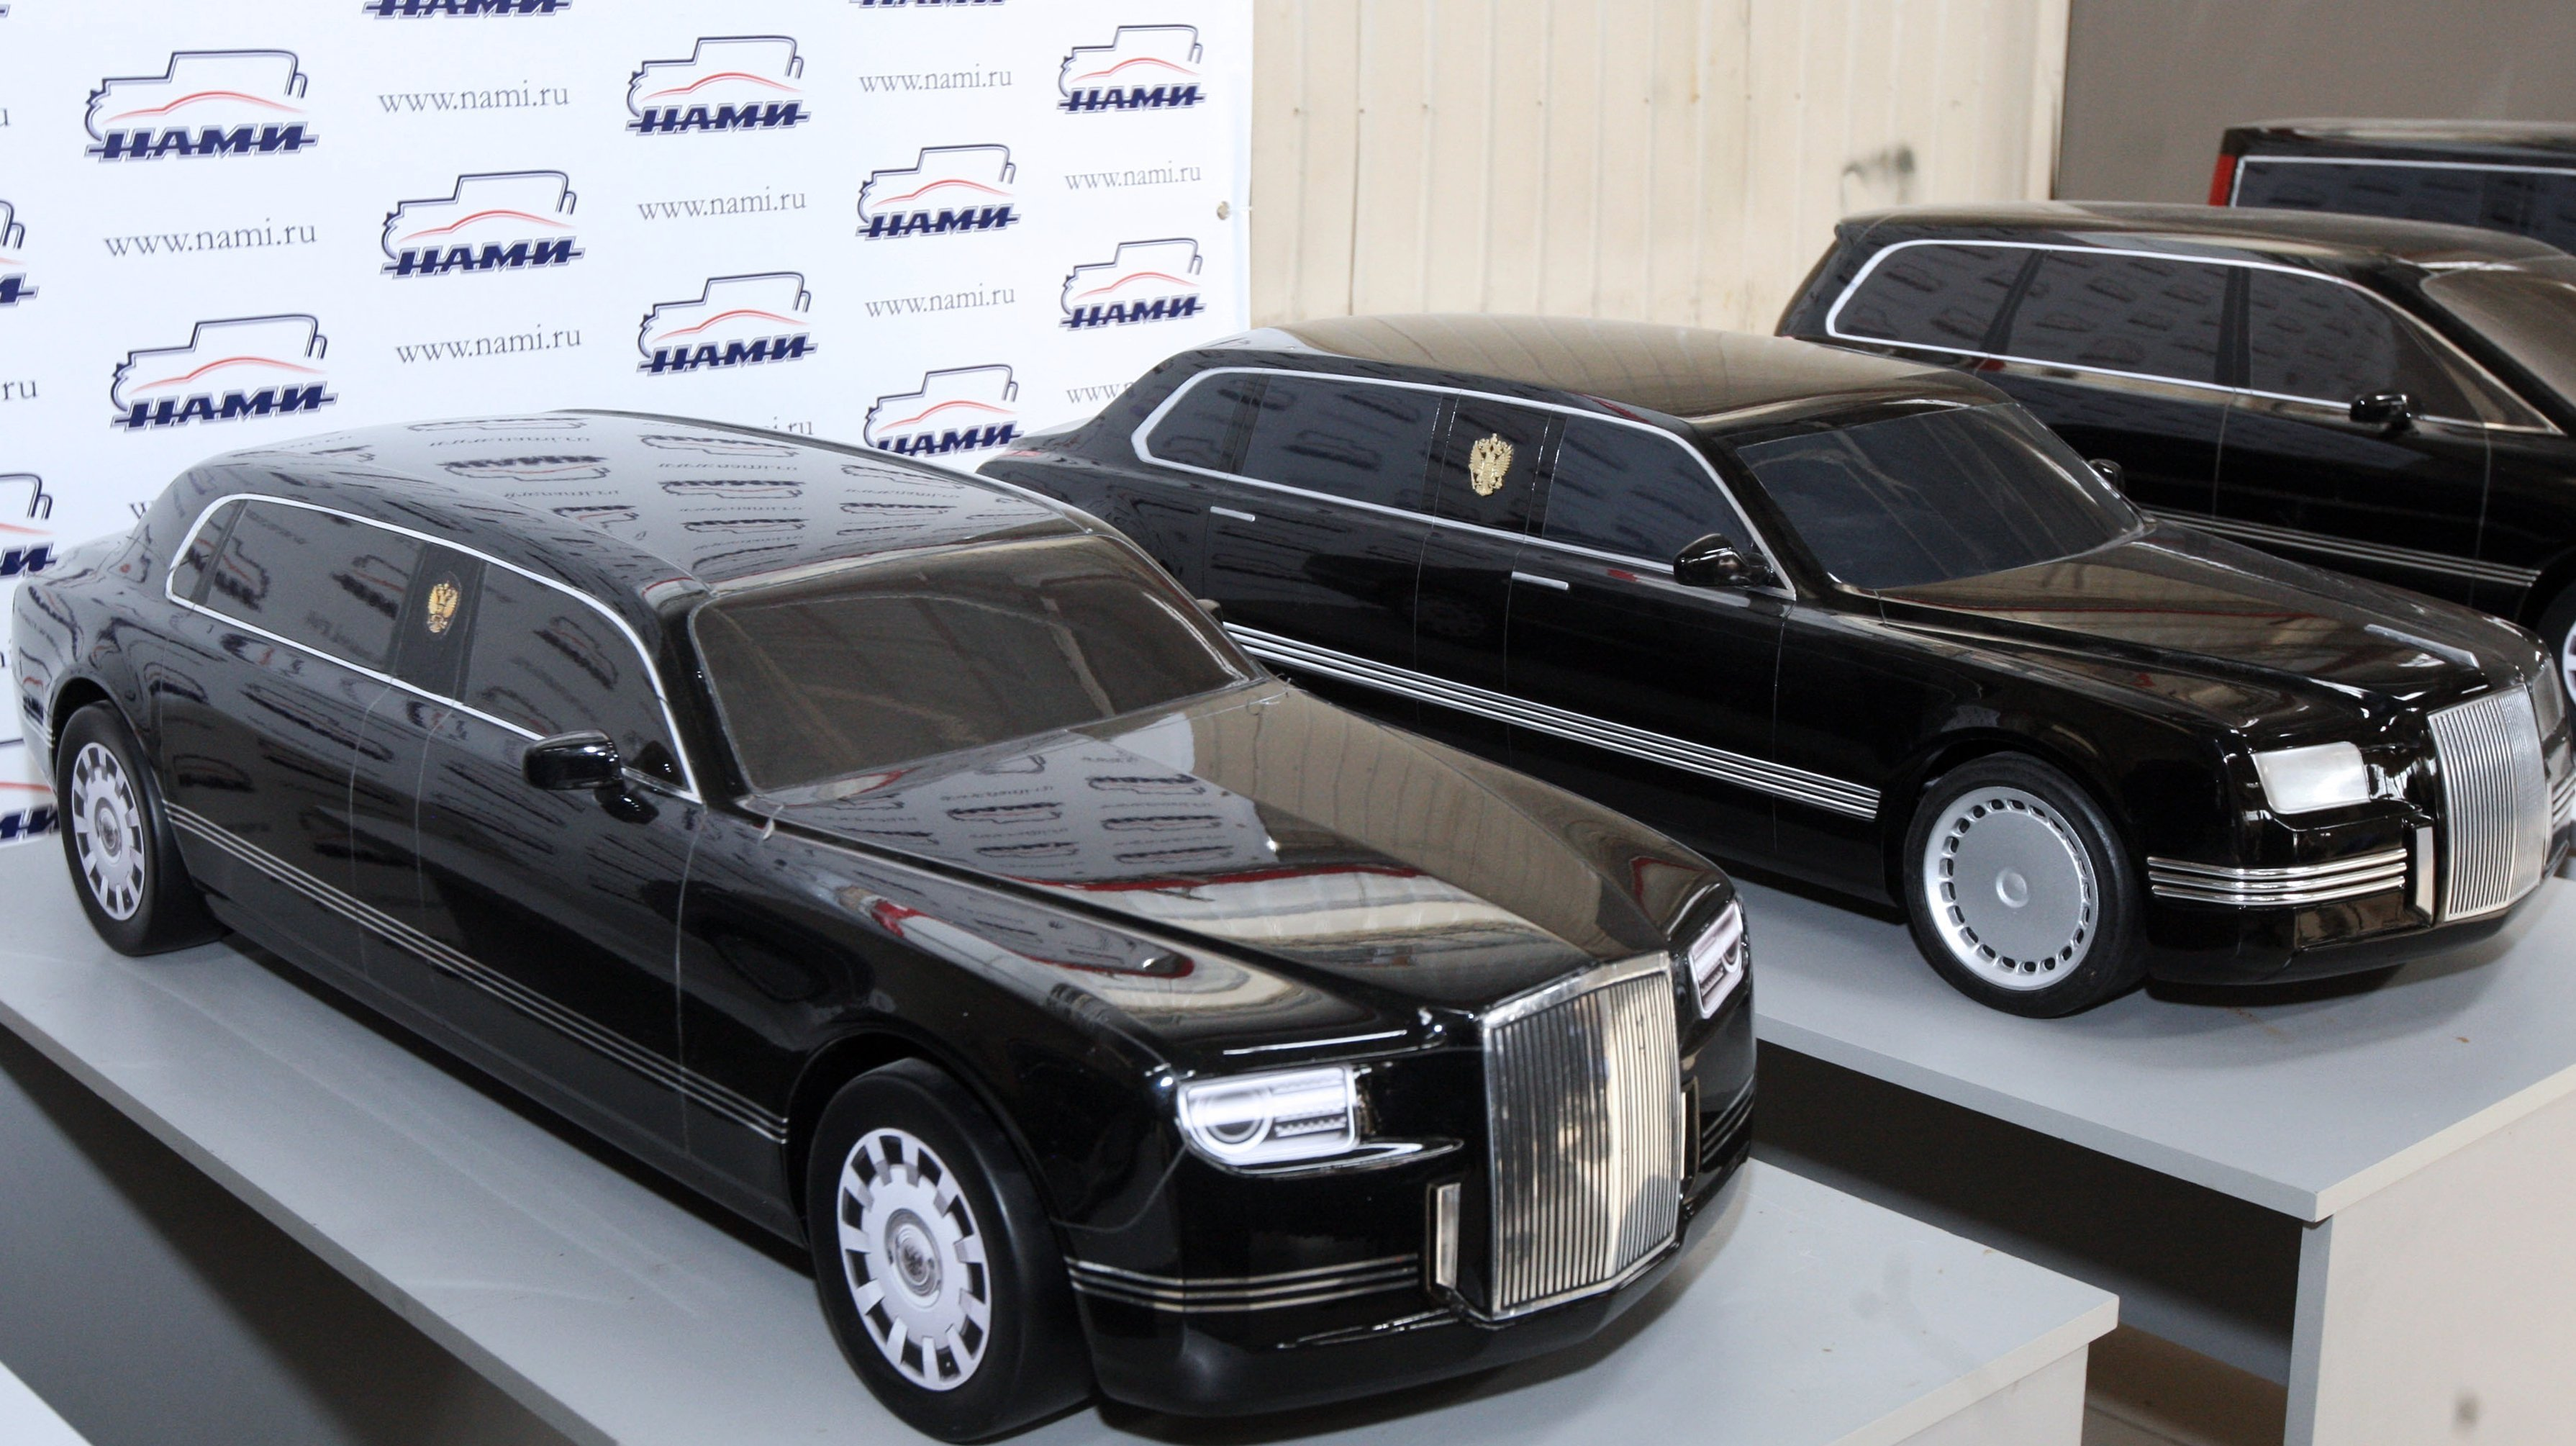 Update Russian President Putin S New Limo Doesn T Look Like A